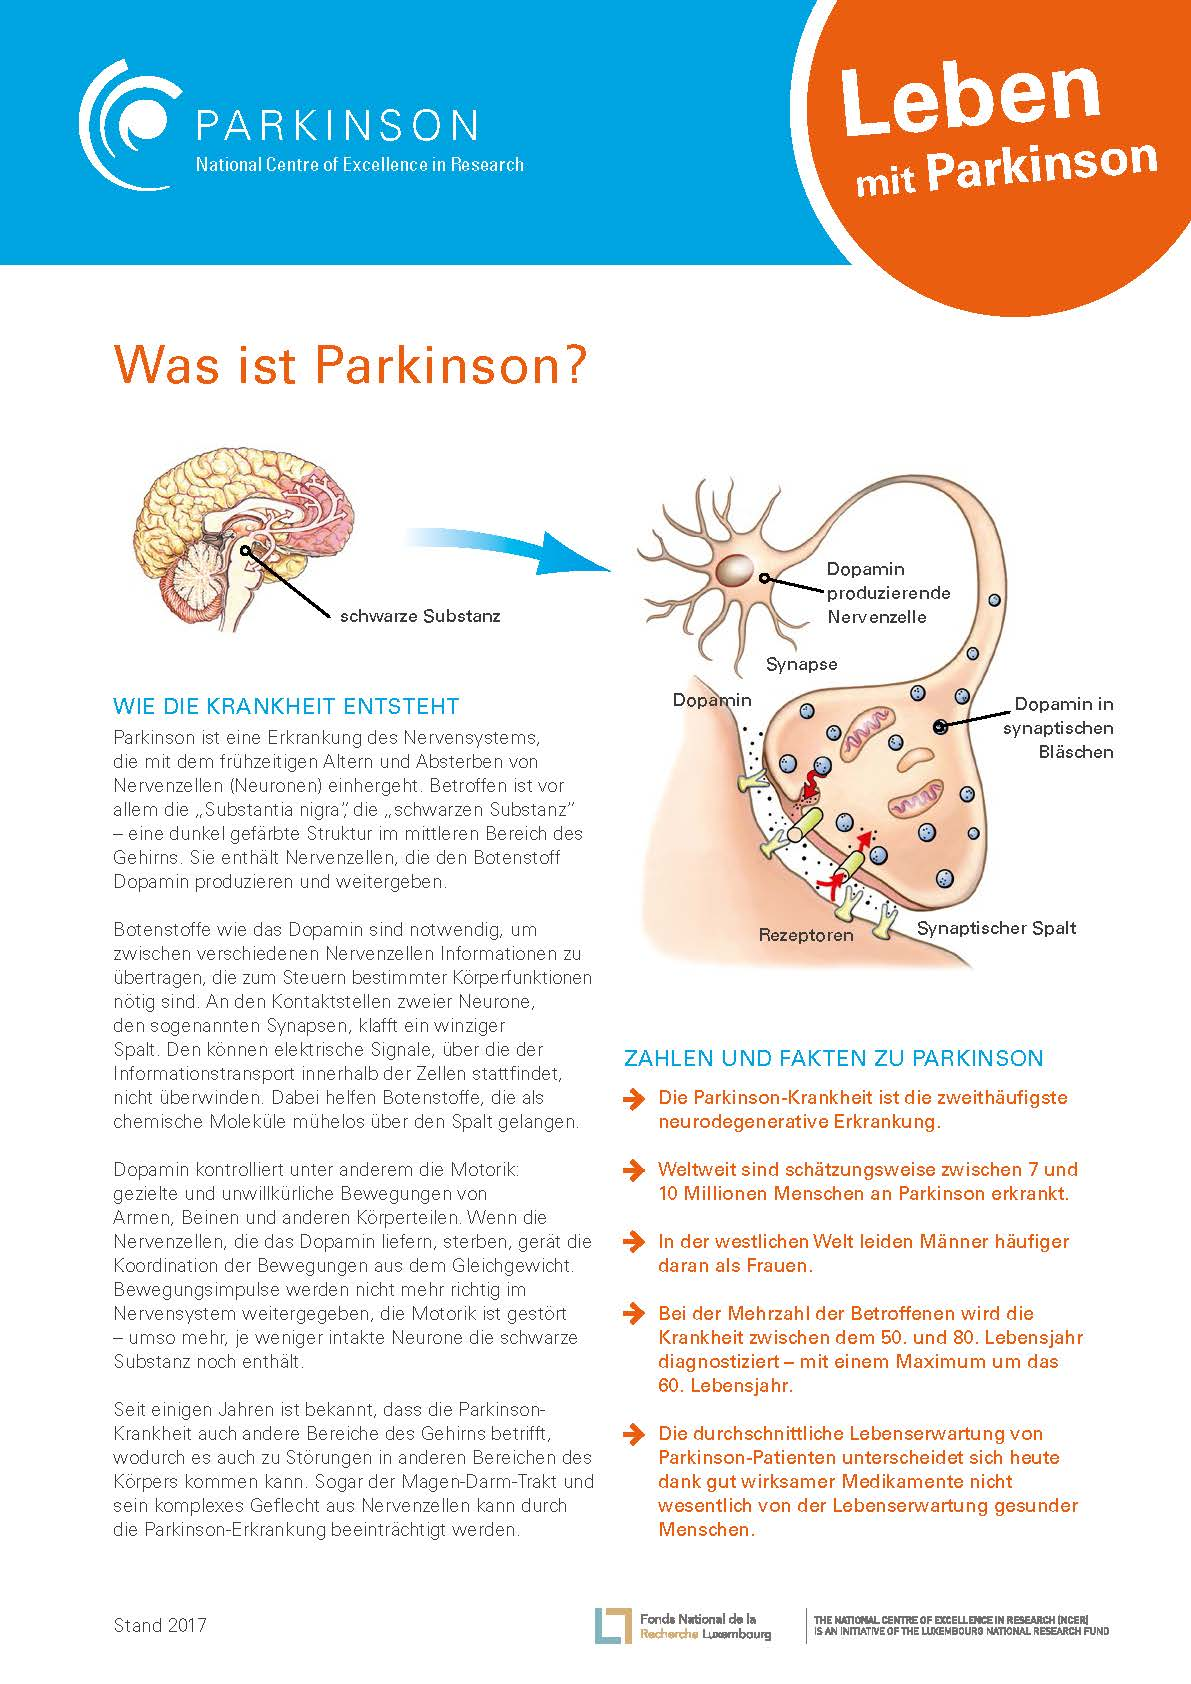 Factsheet - Was ist Parkinsons